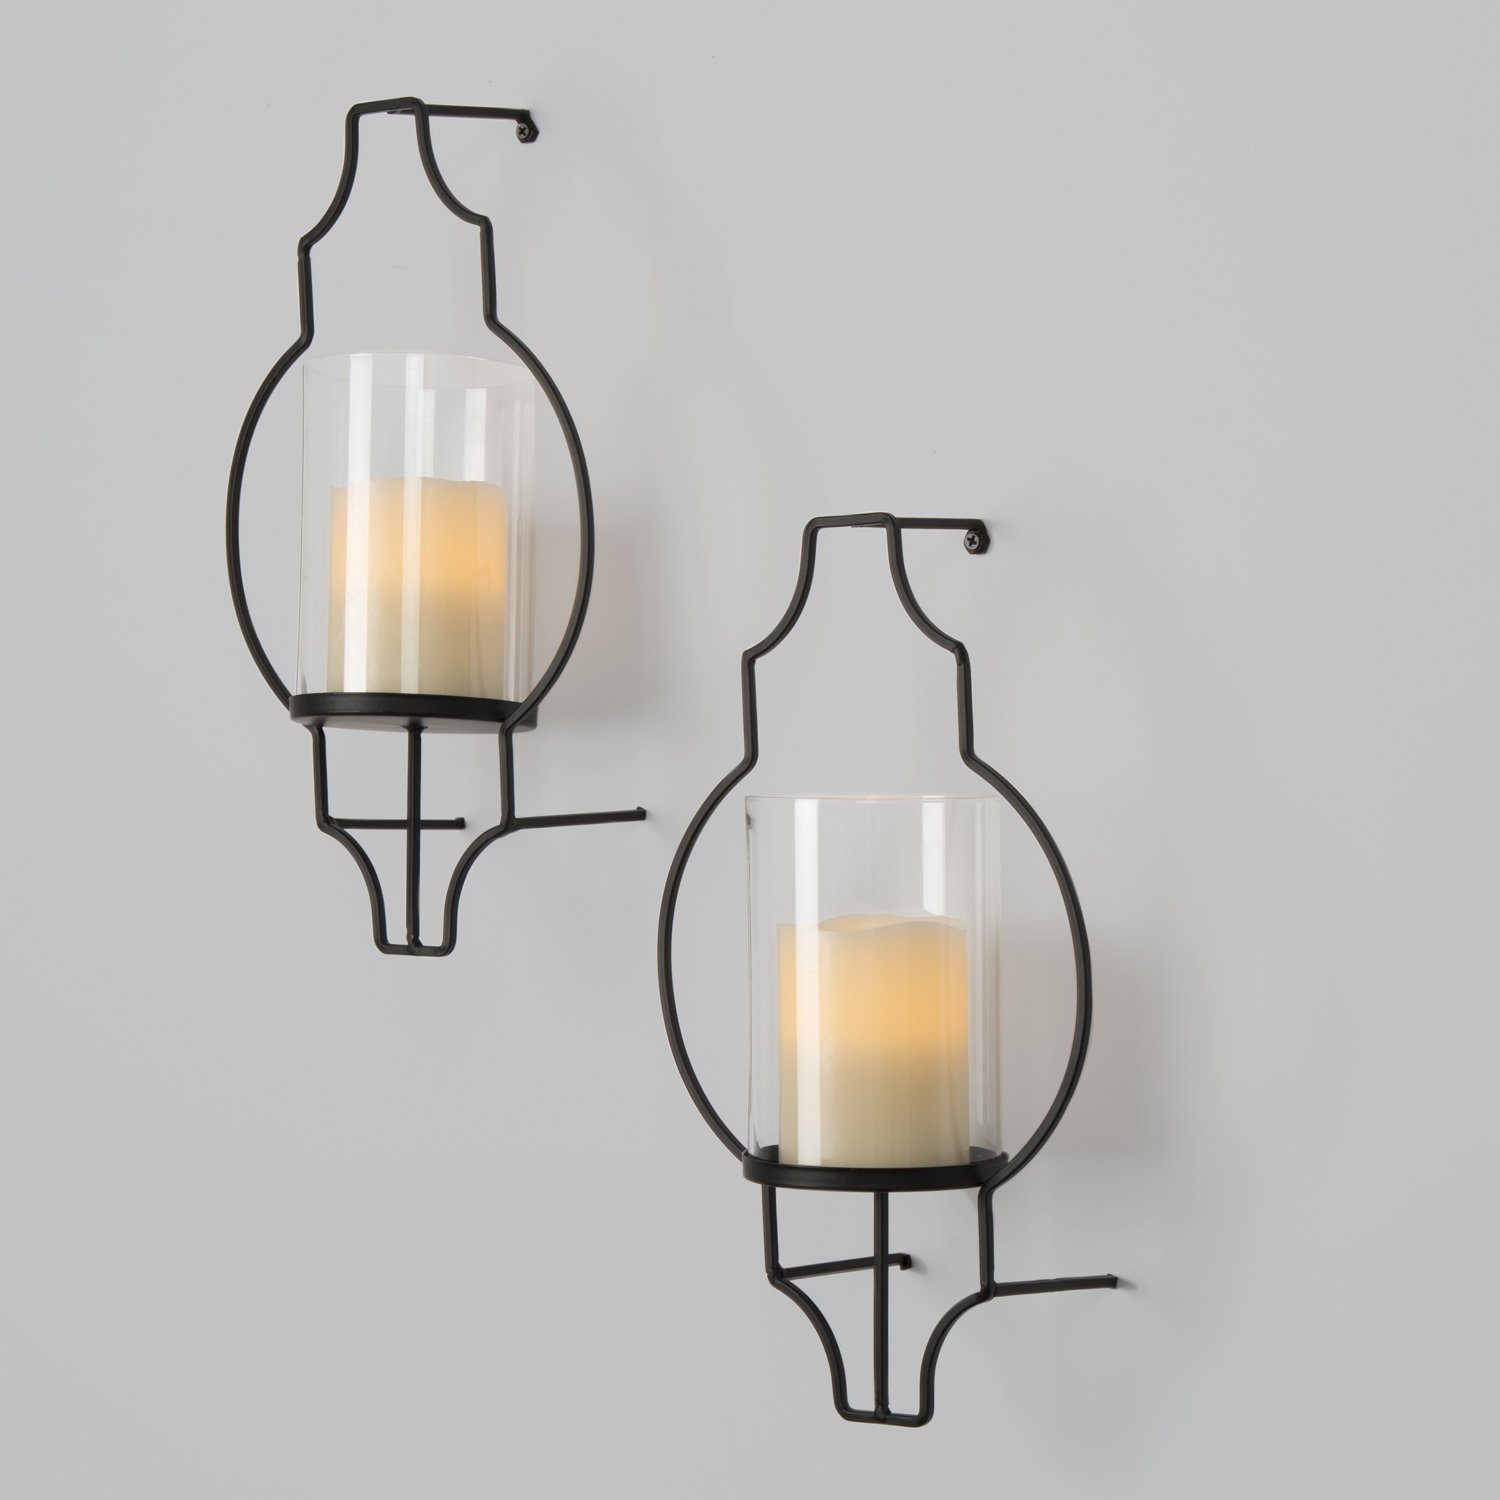 LampLust Flameless Candle Wall Sconces - Glass Hurricane Holders ...